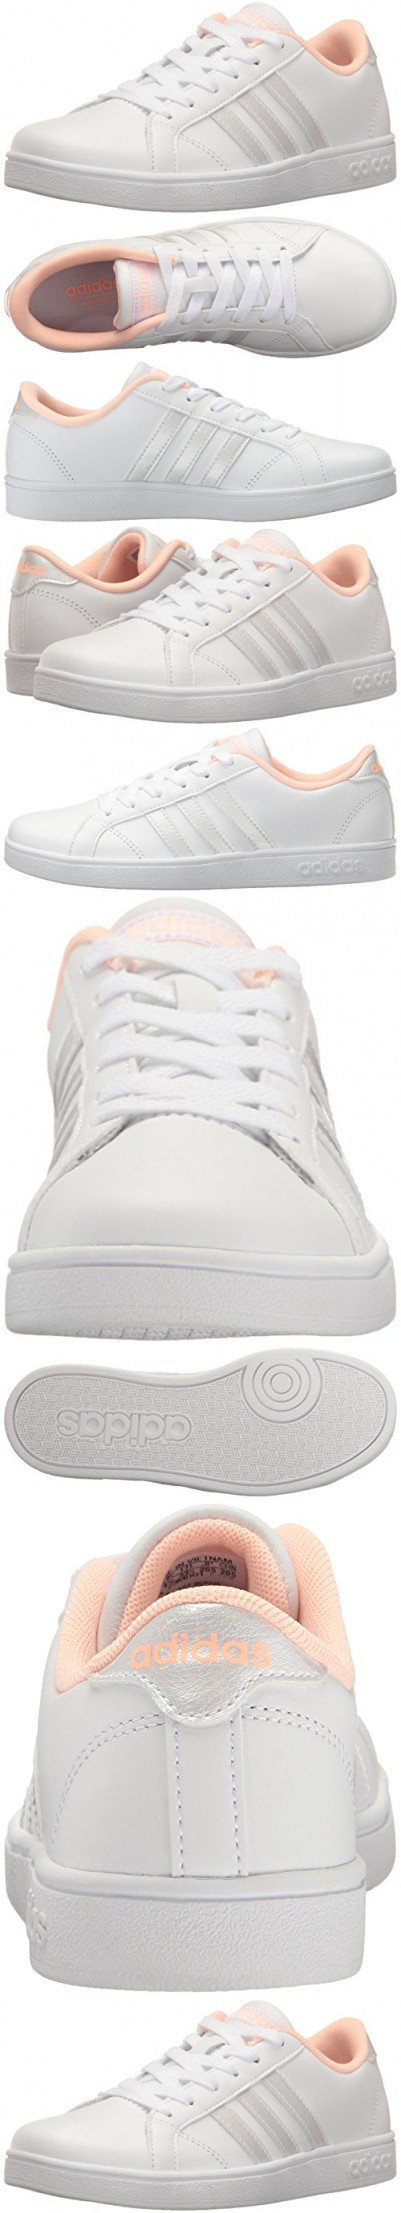 ... inexpensive adidas neo girls baseline k sneaker white white haze coral  12 medium us little kid 7ec527d3a